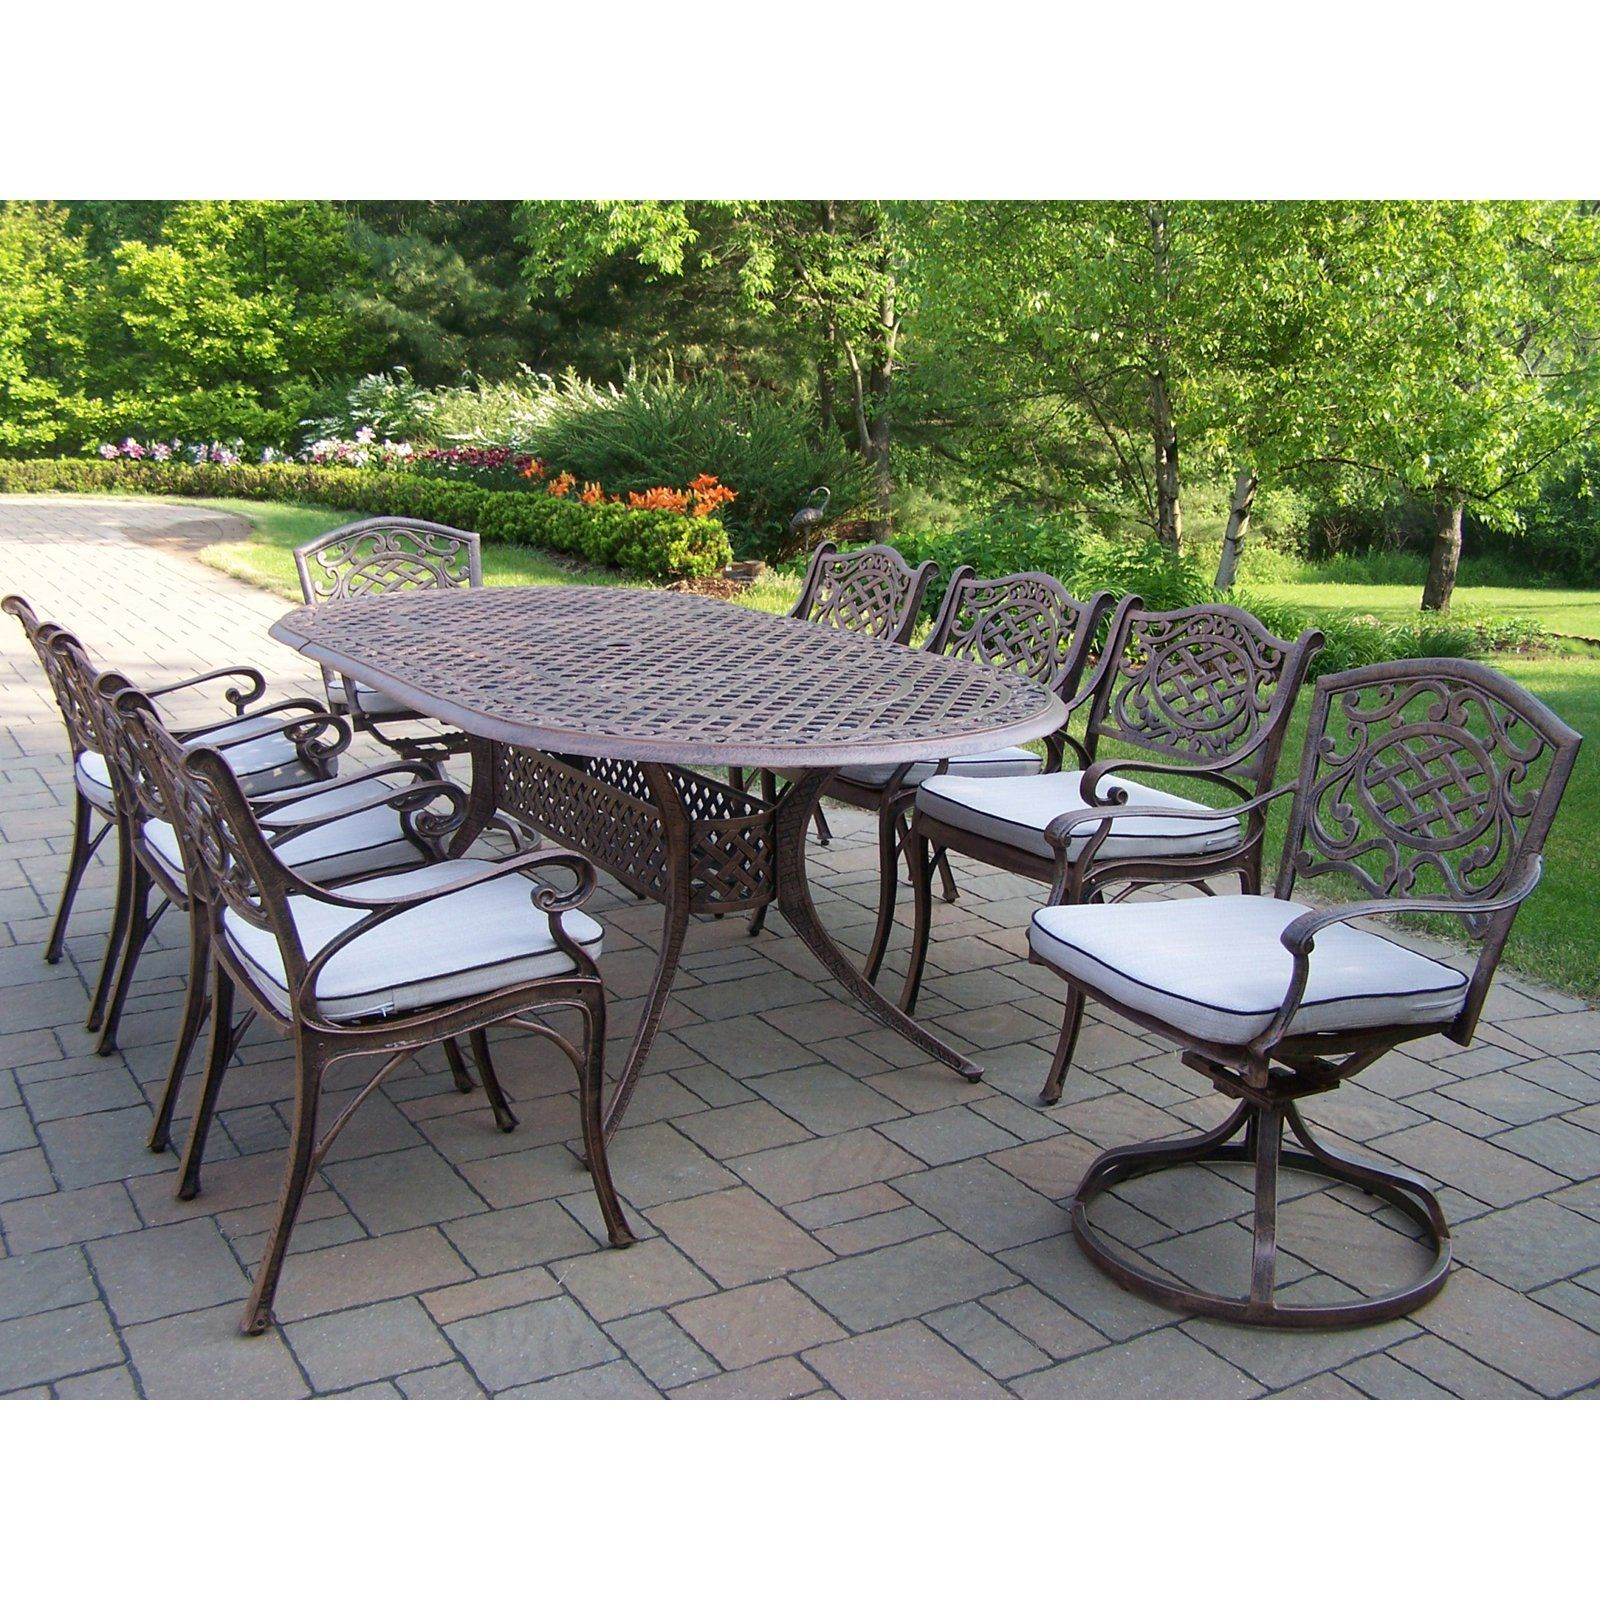 styles oval to productdetail outdoor hover furniture taupe table floral zoom home blossom dining patio htm